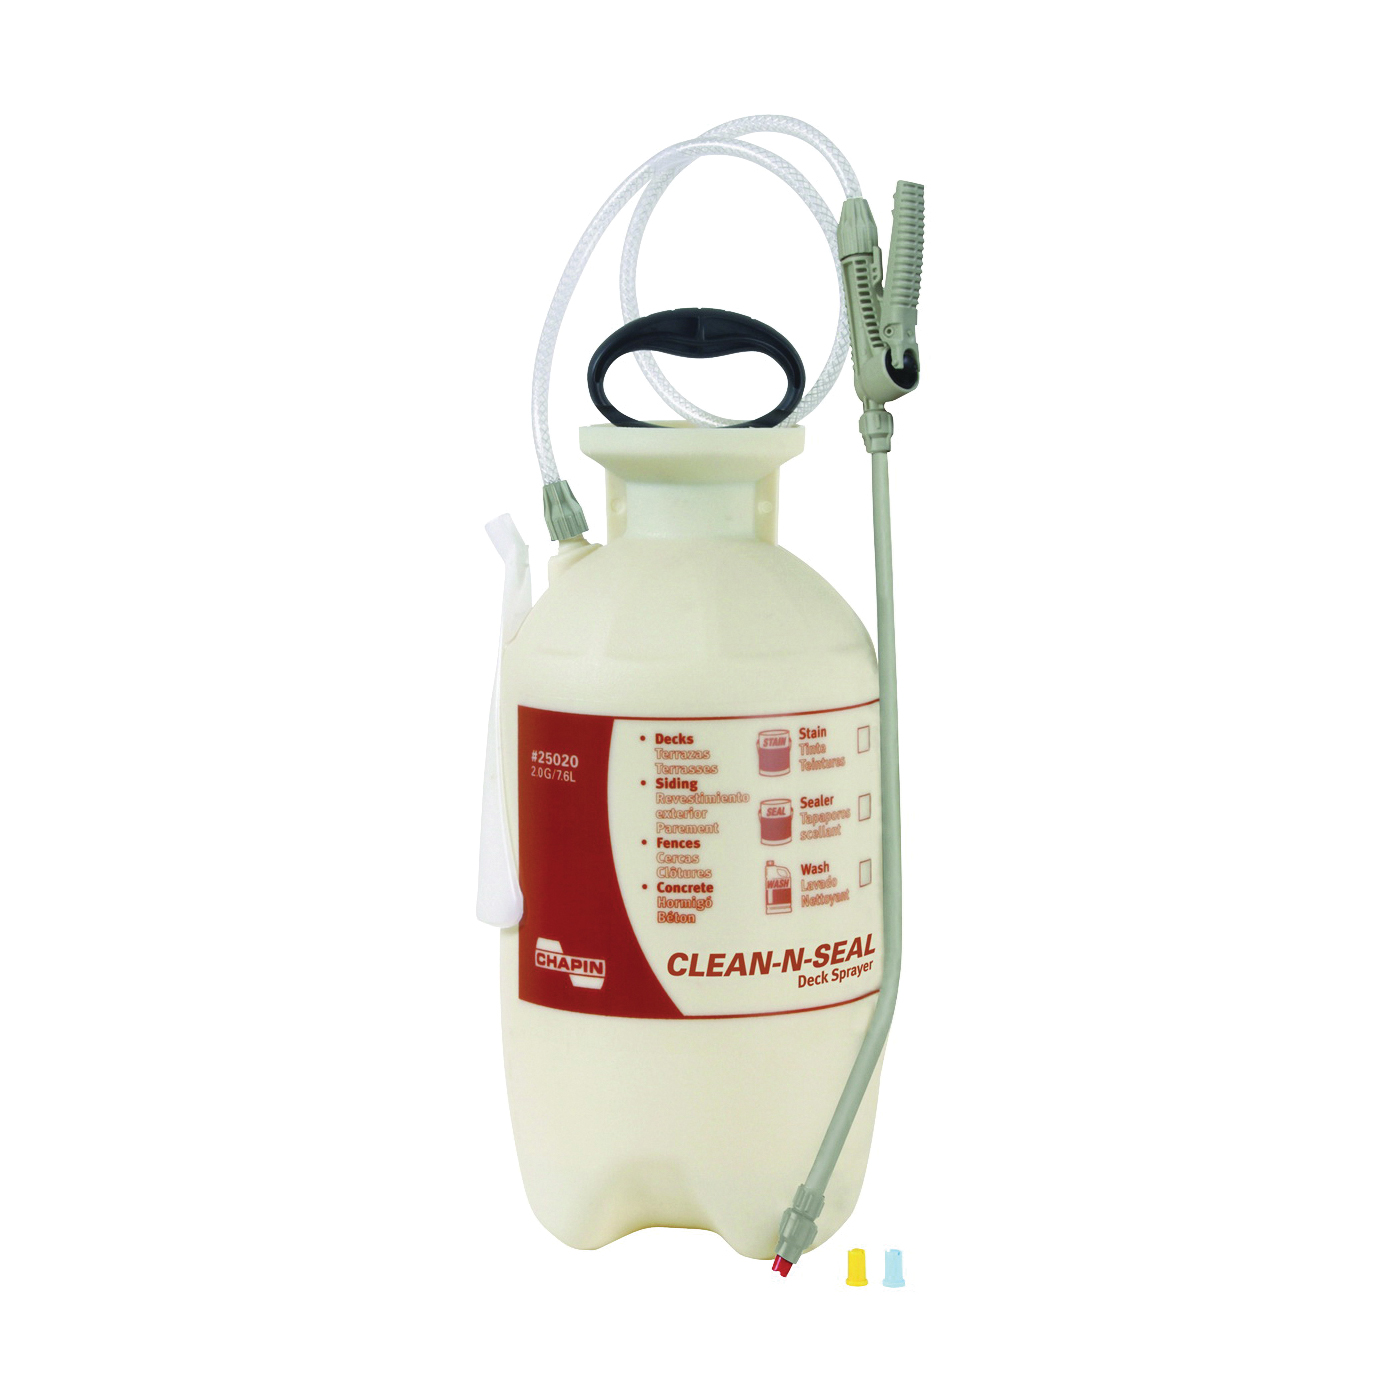 Picture of CHAPIN Clean 'N Seal 25020 Compression Sprayer, 2 gal Tank, Poly Tank, 34 in L Hose